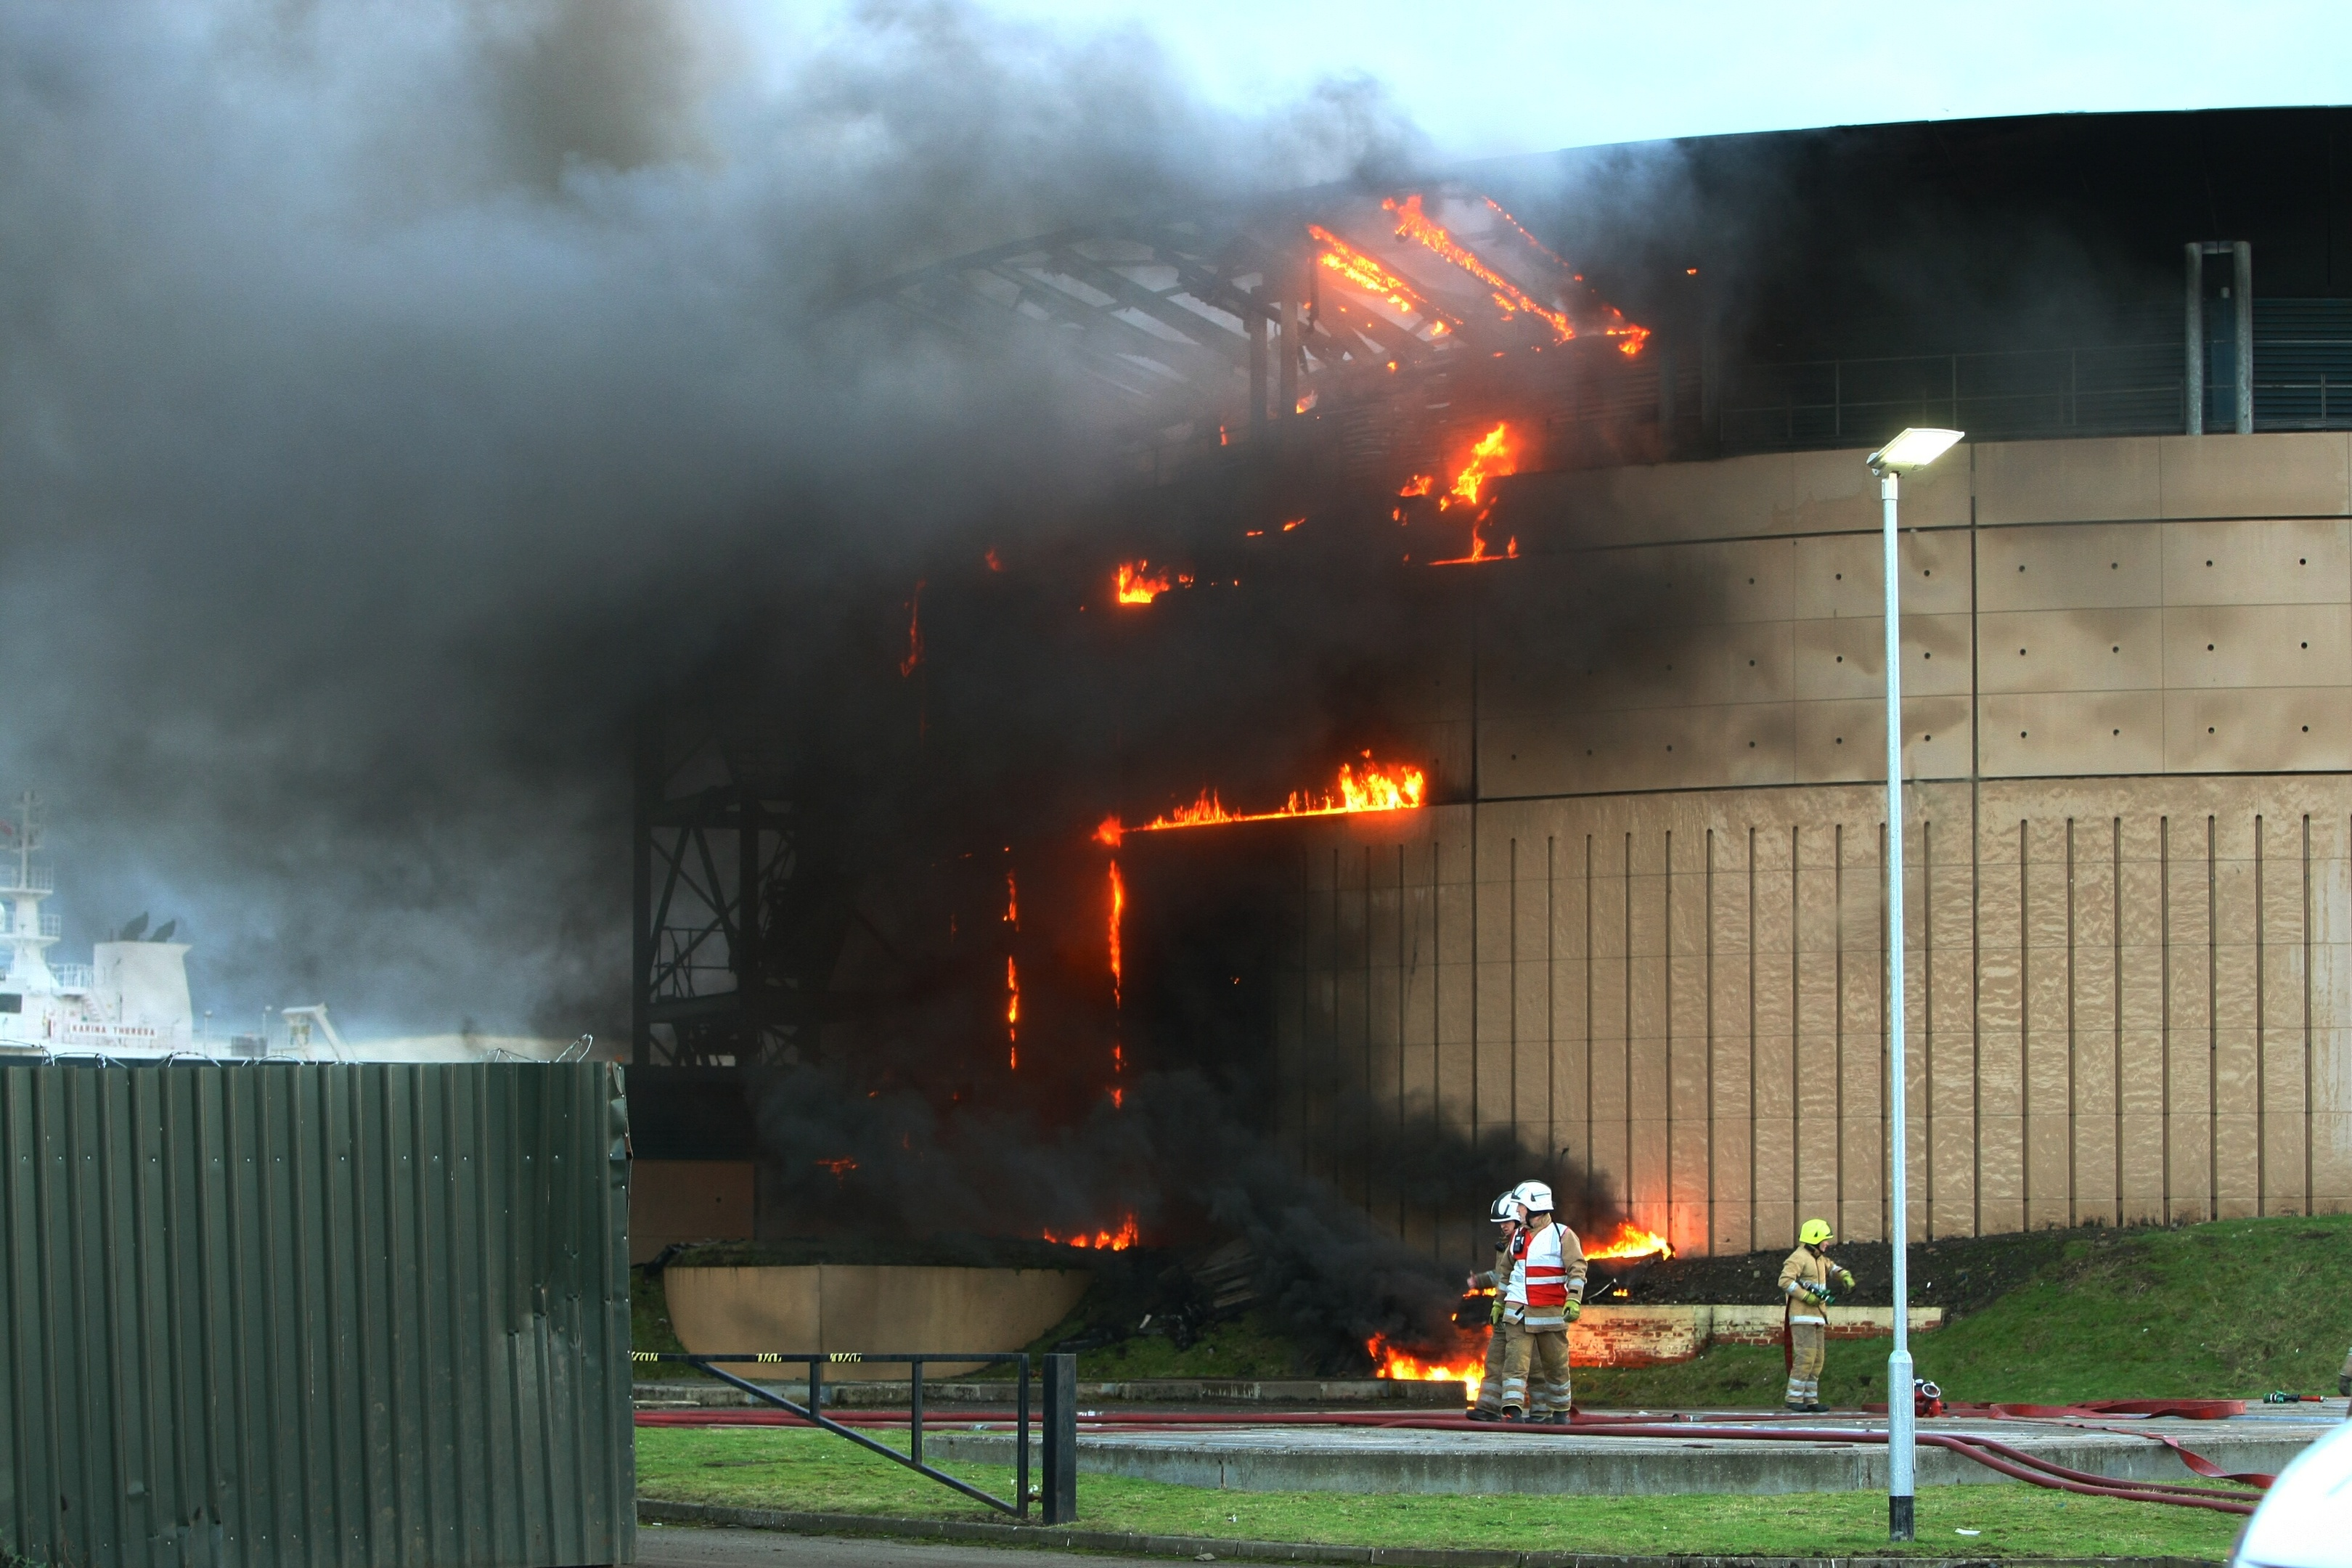 The fire at the King George V water tower on Dundee docks in February 2017